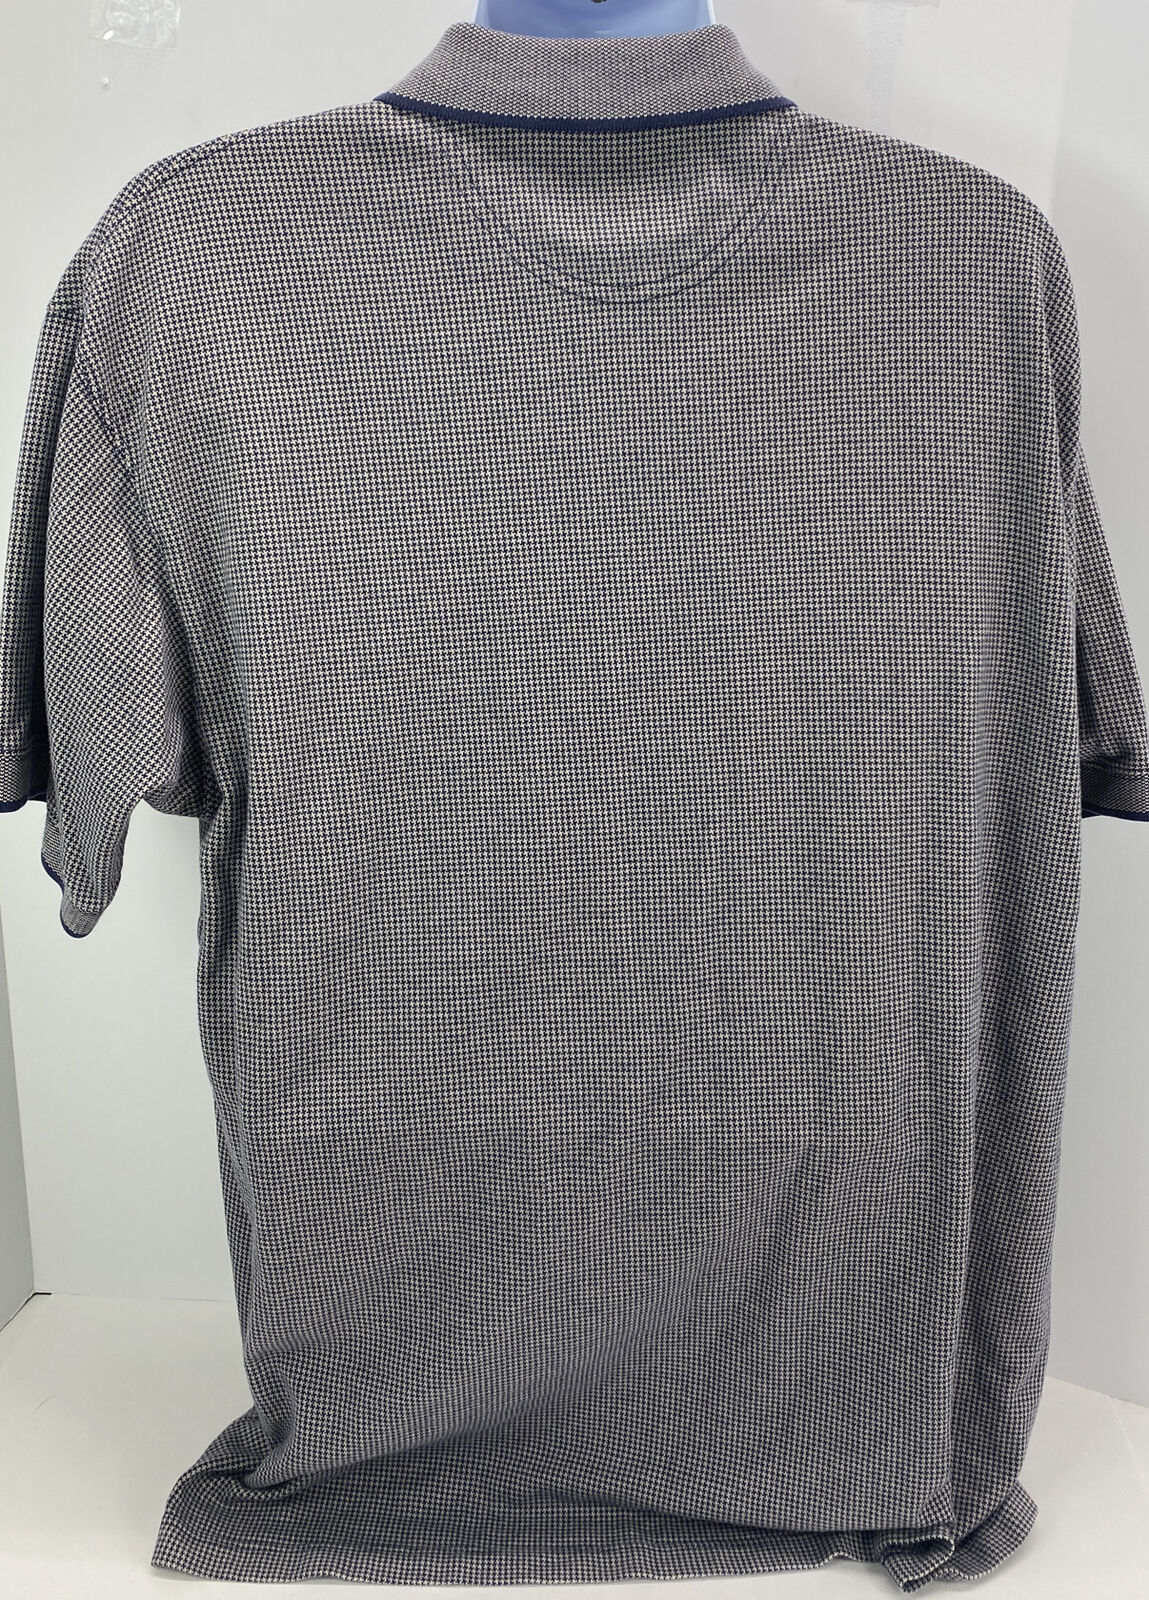 Woolrich John Rich and Bros Mens Size XL Tall Pol… - image 3